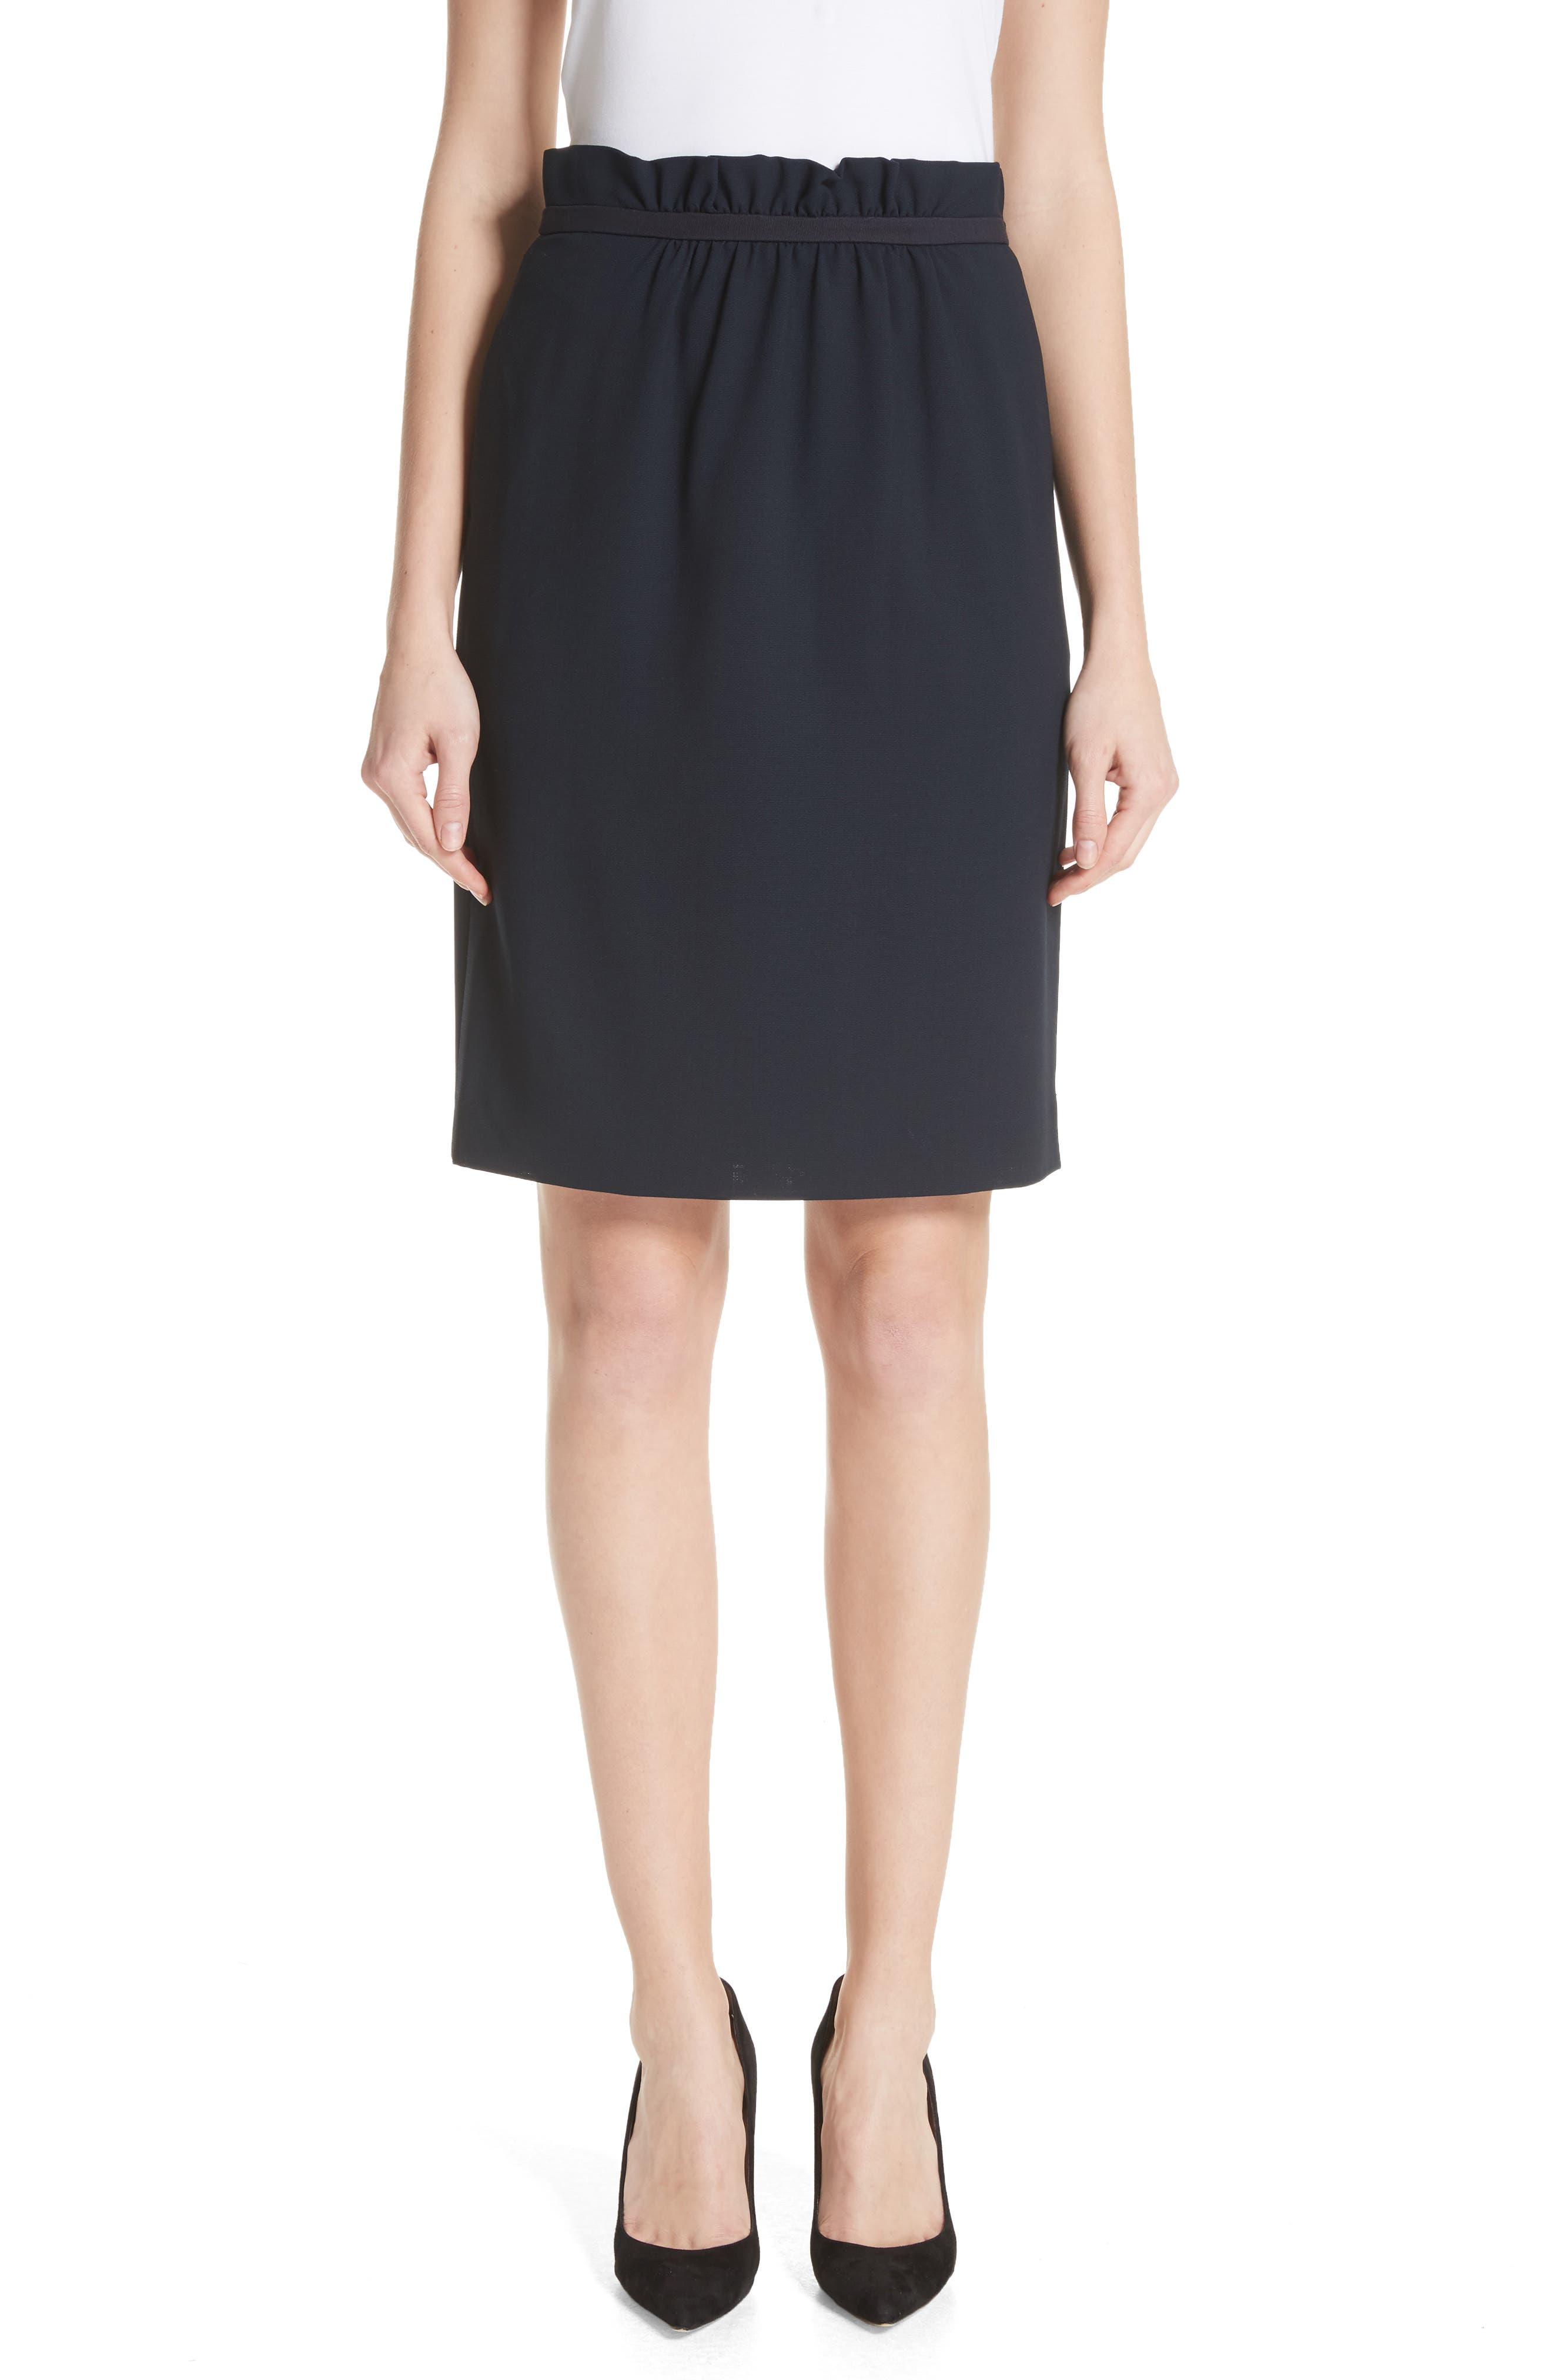 Emporio Armani Stretch Wool Crepe Skirt